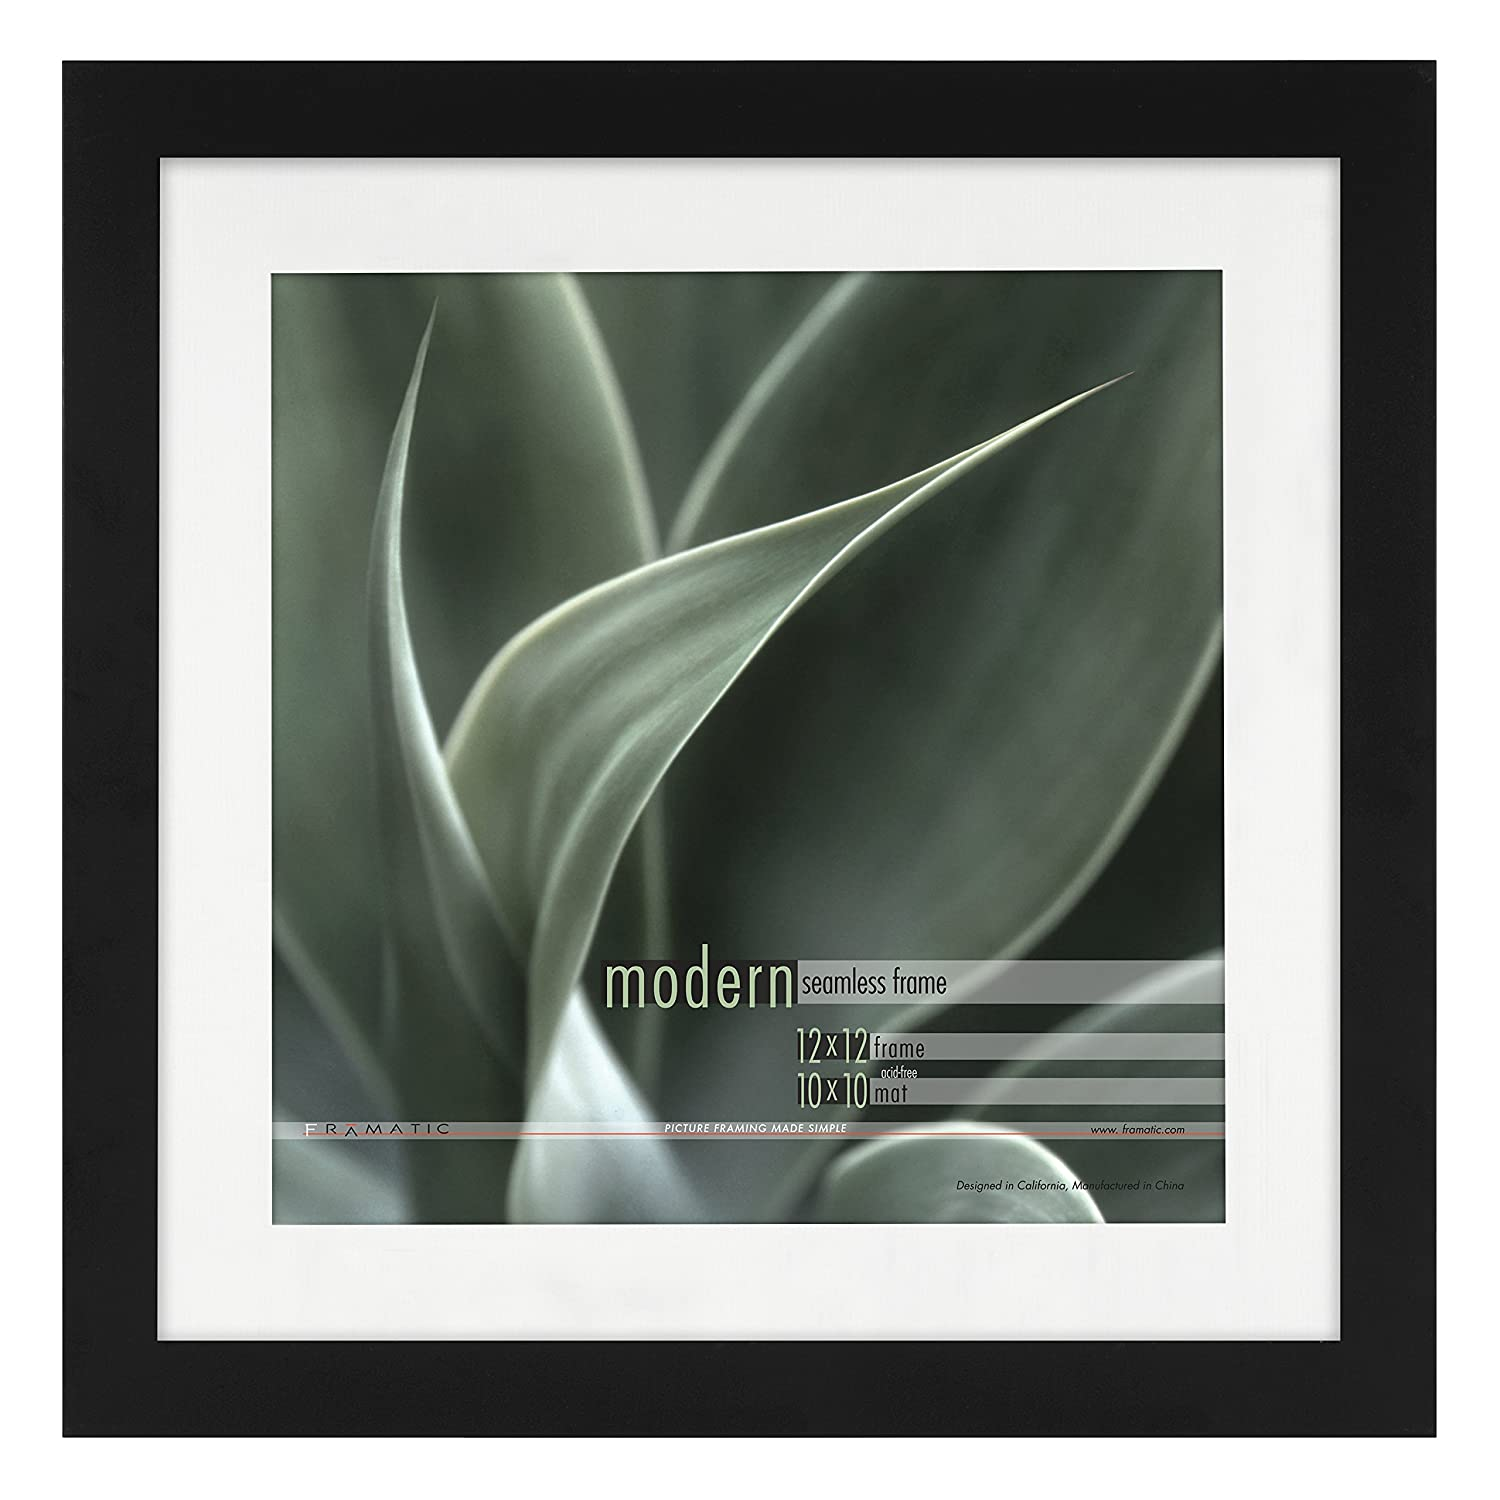 Amazon.com - Framatic Modern 12x12 Inch Frame Matted for 10x10 Inch ...